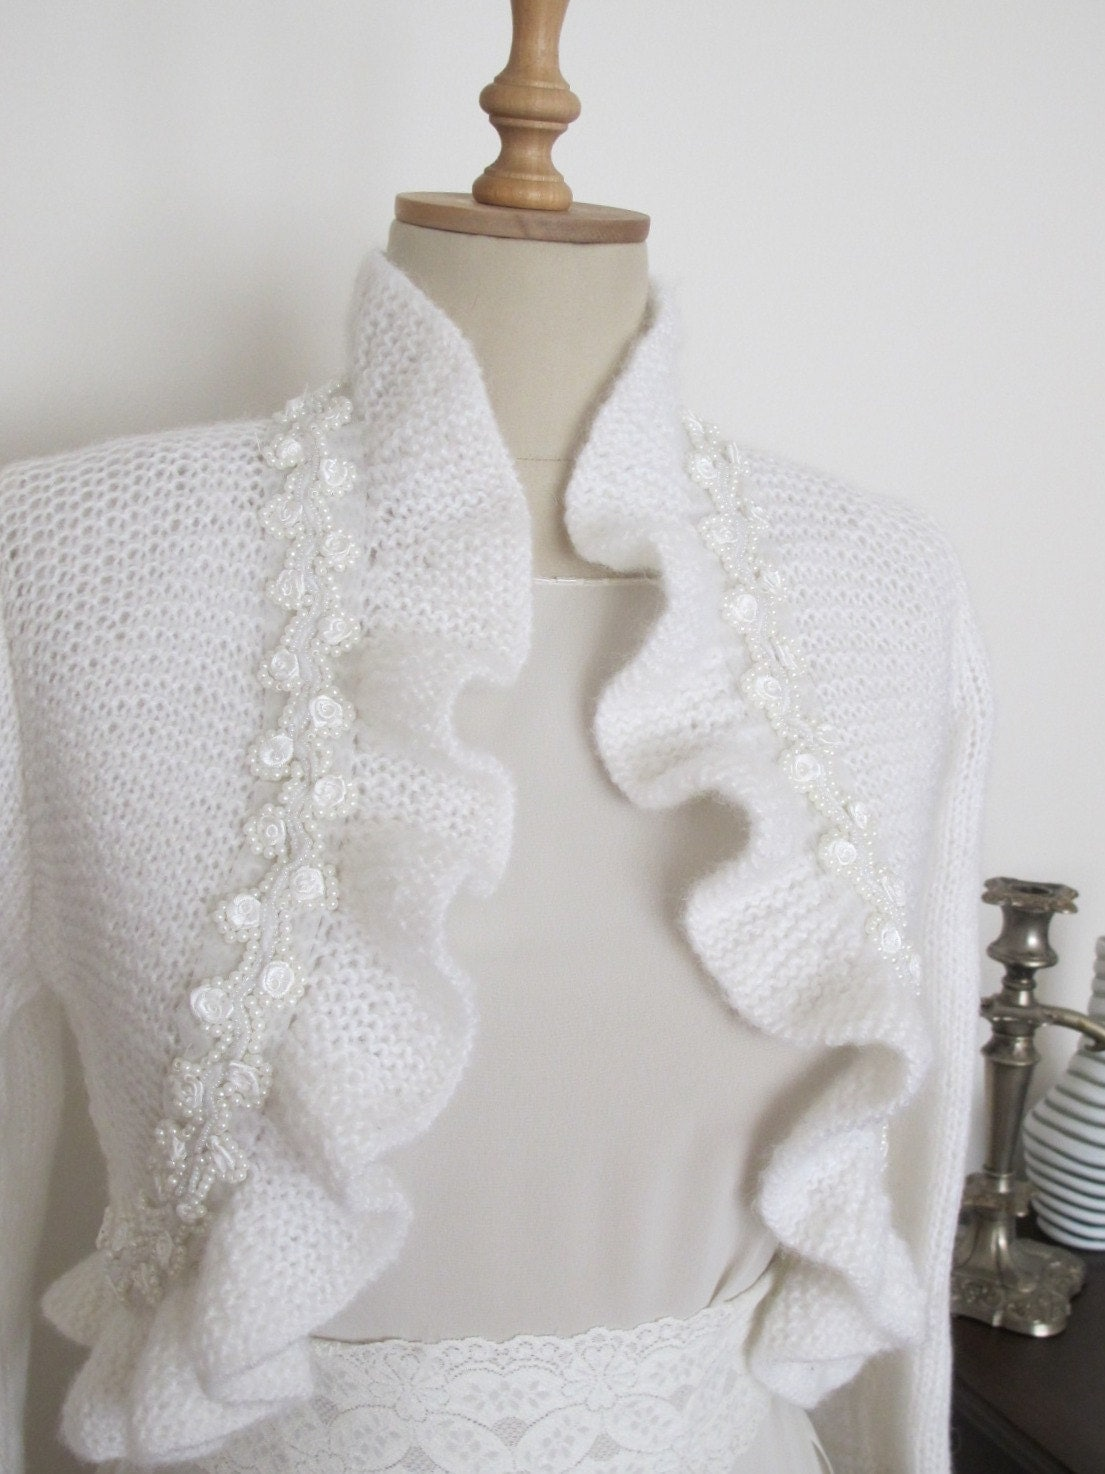 Free Crochet Pattern Bolero Jacket : BOLERO CROCHET JACKET PATTERN Patterns